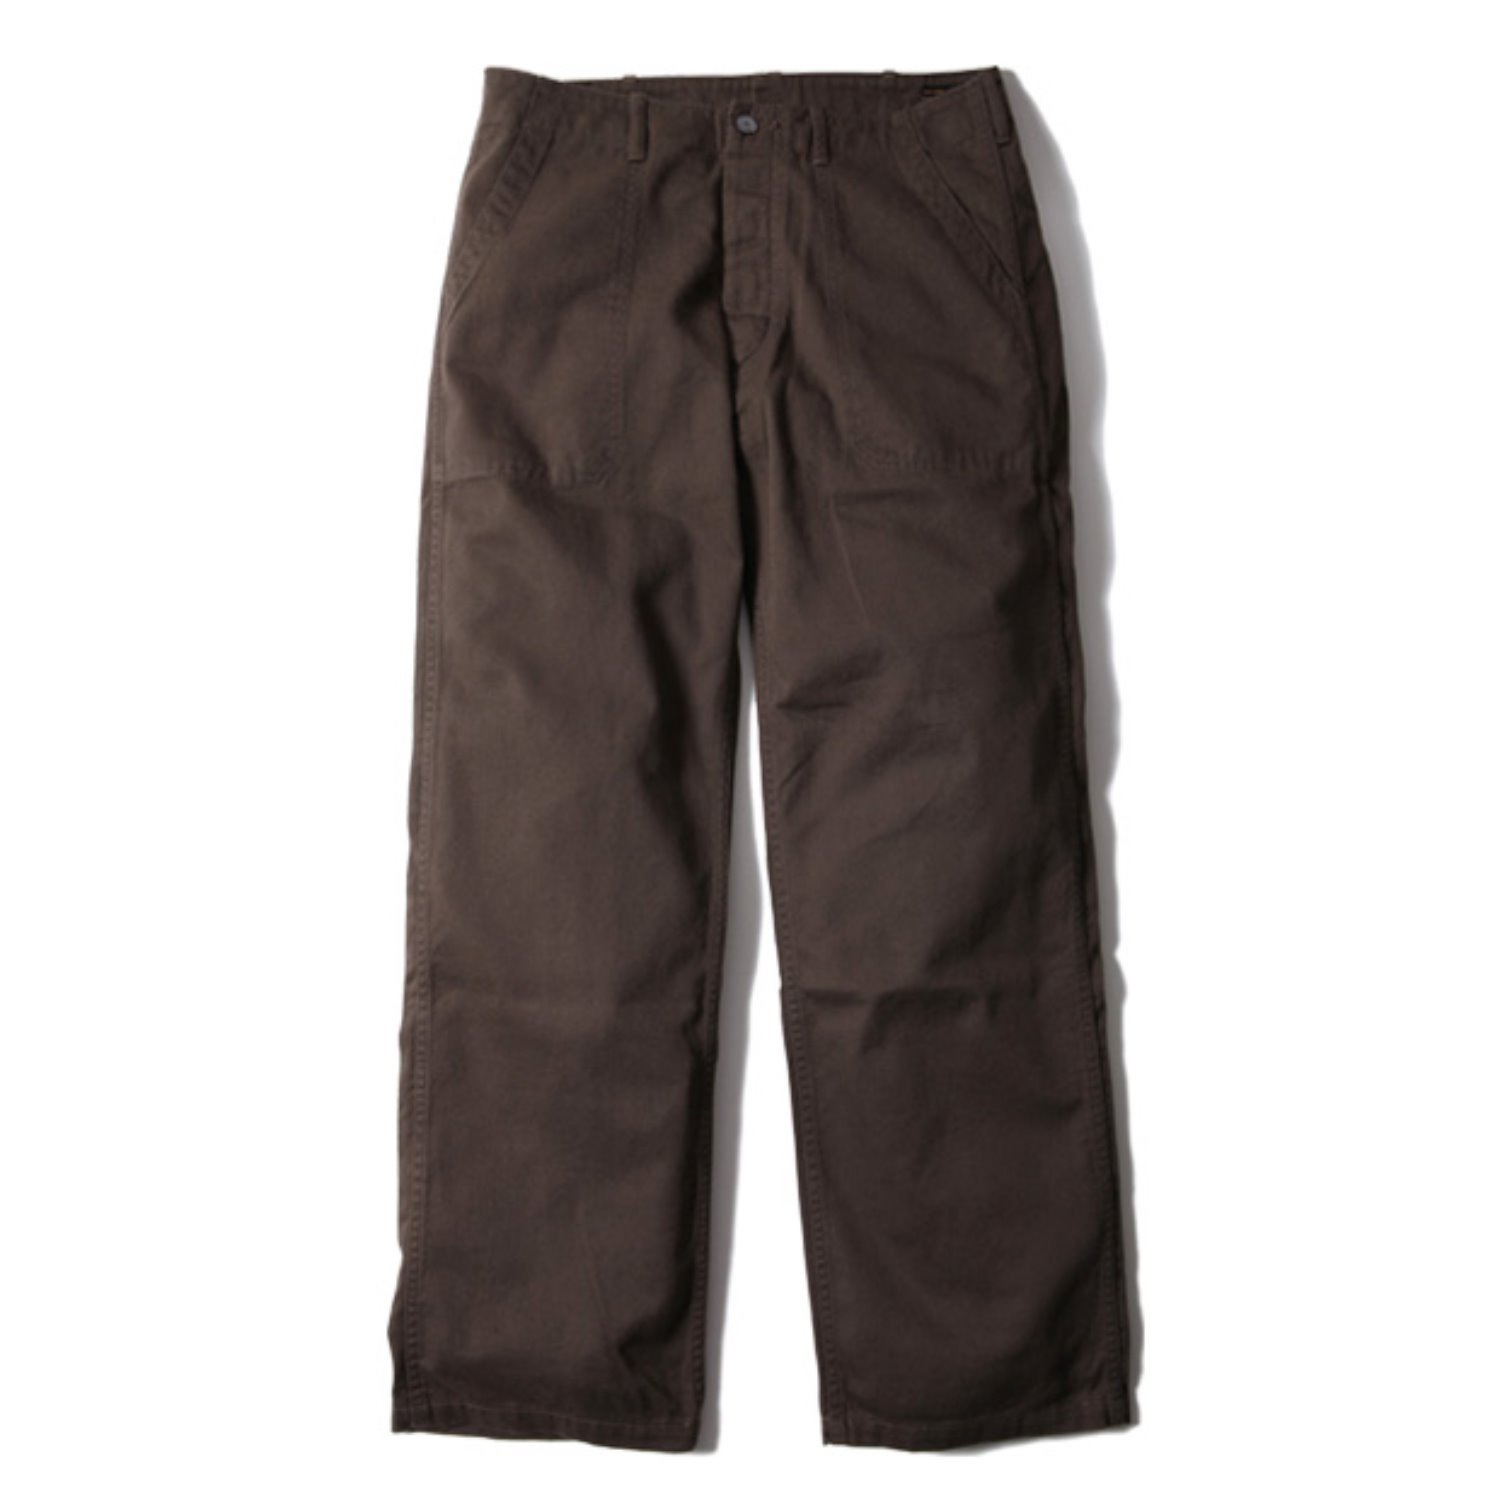 Butcher Pants (Dark Olive)